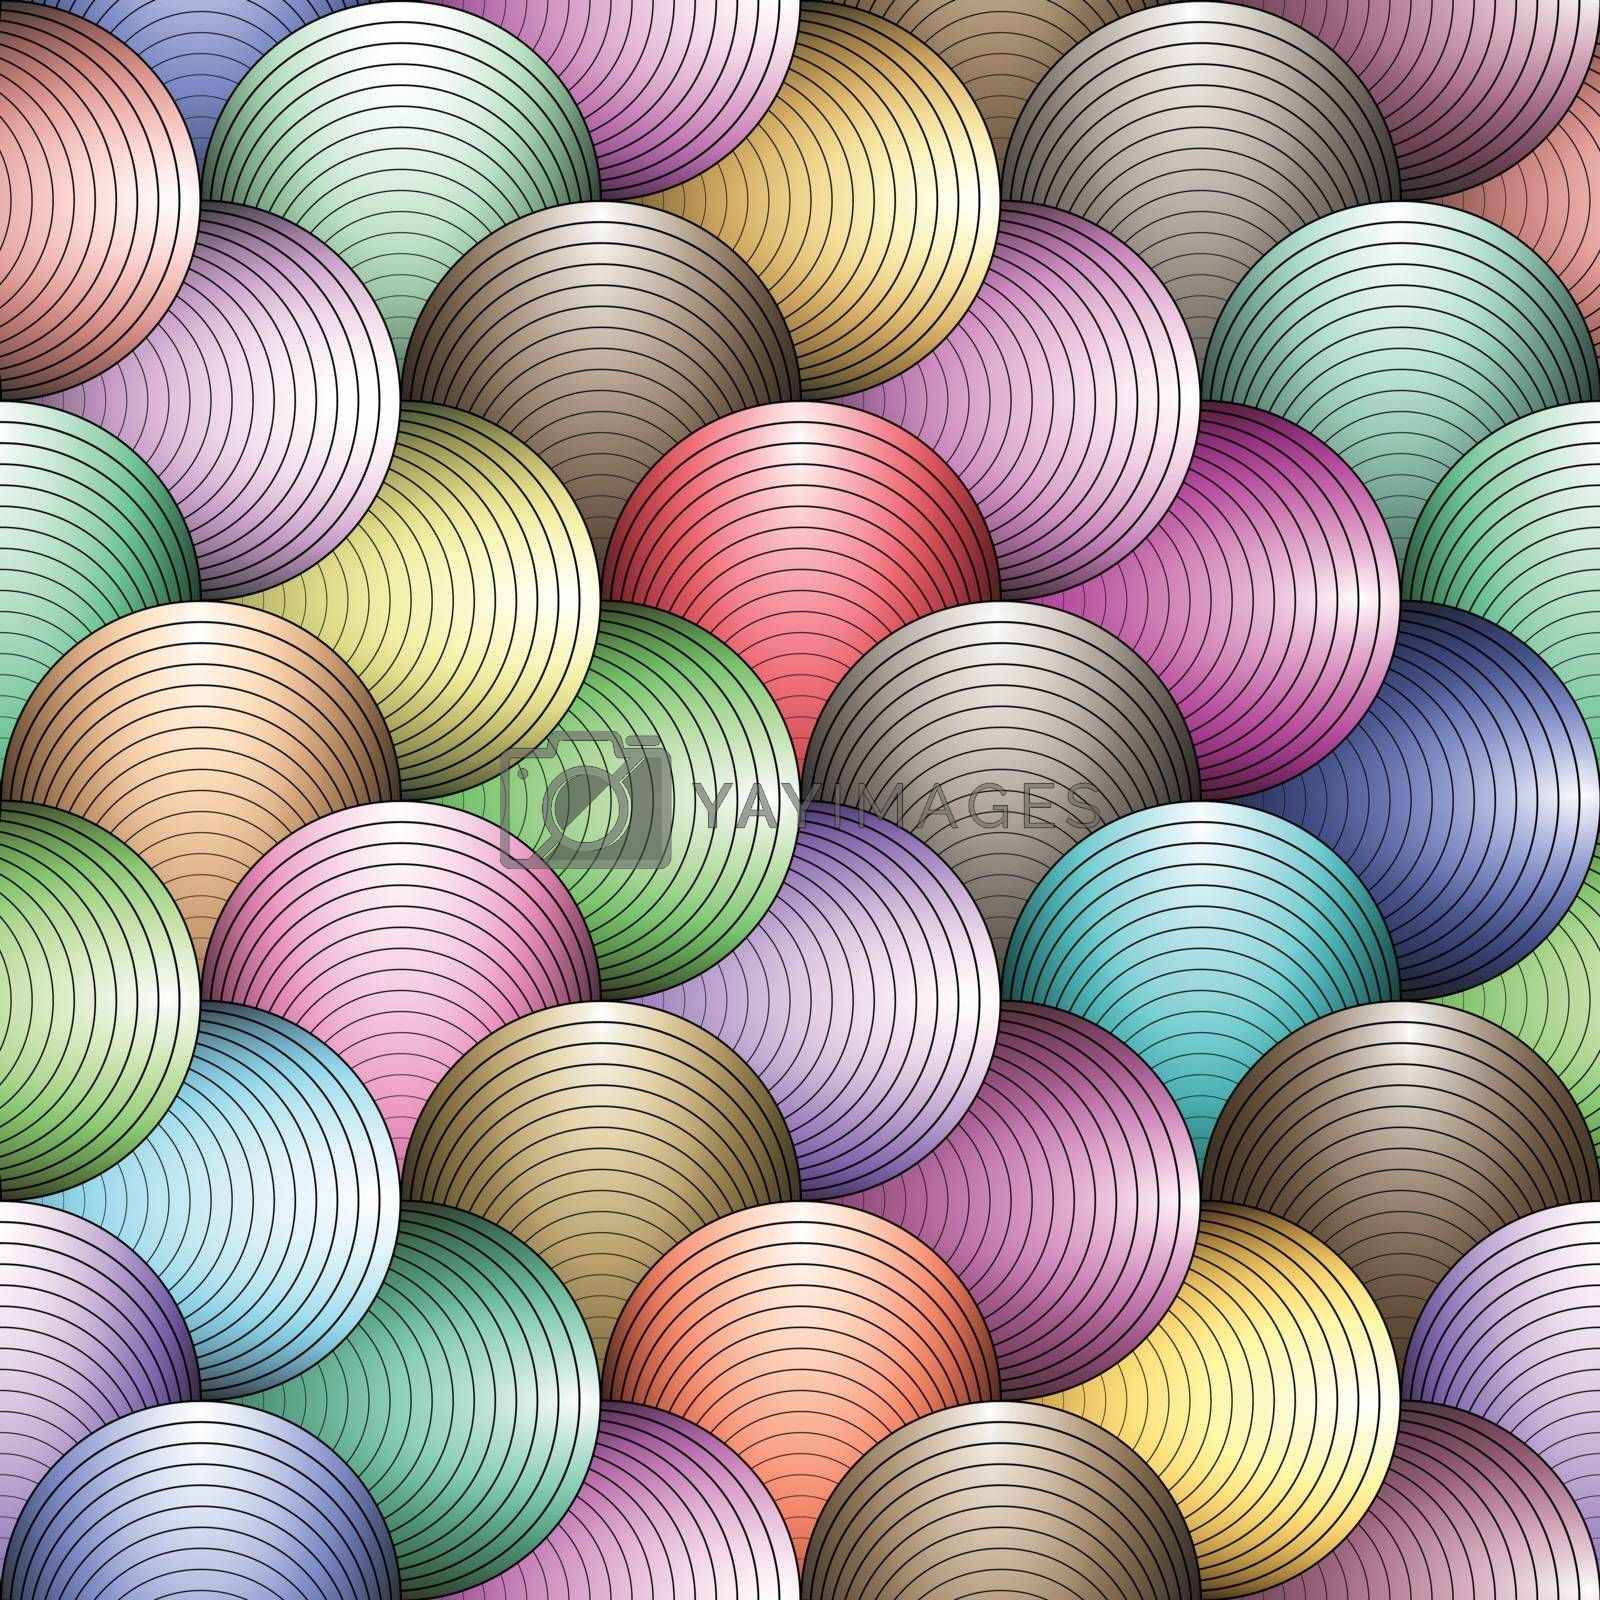 Abstract colorful geometric lines seamless pattern background.